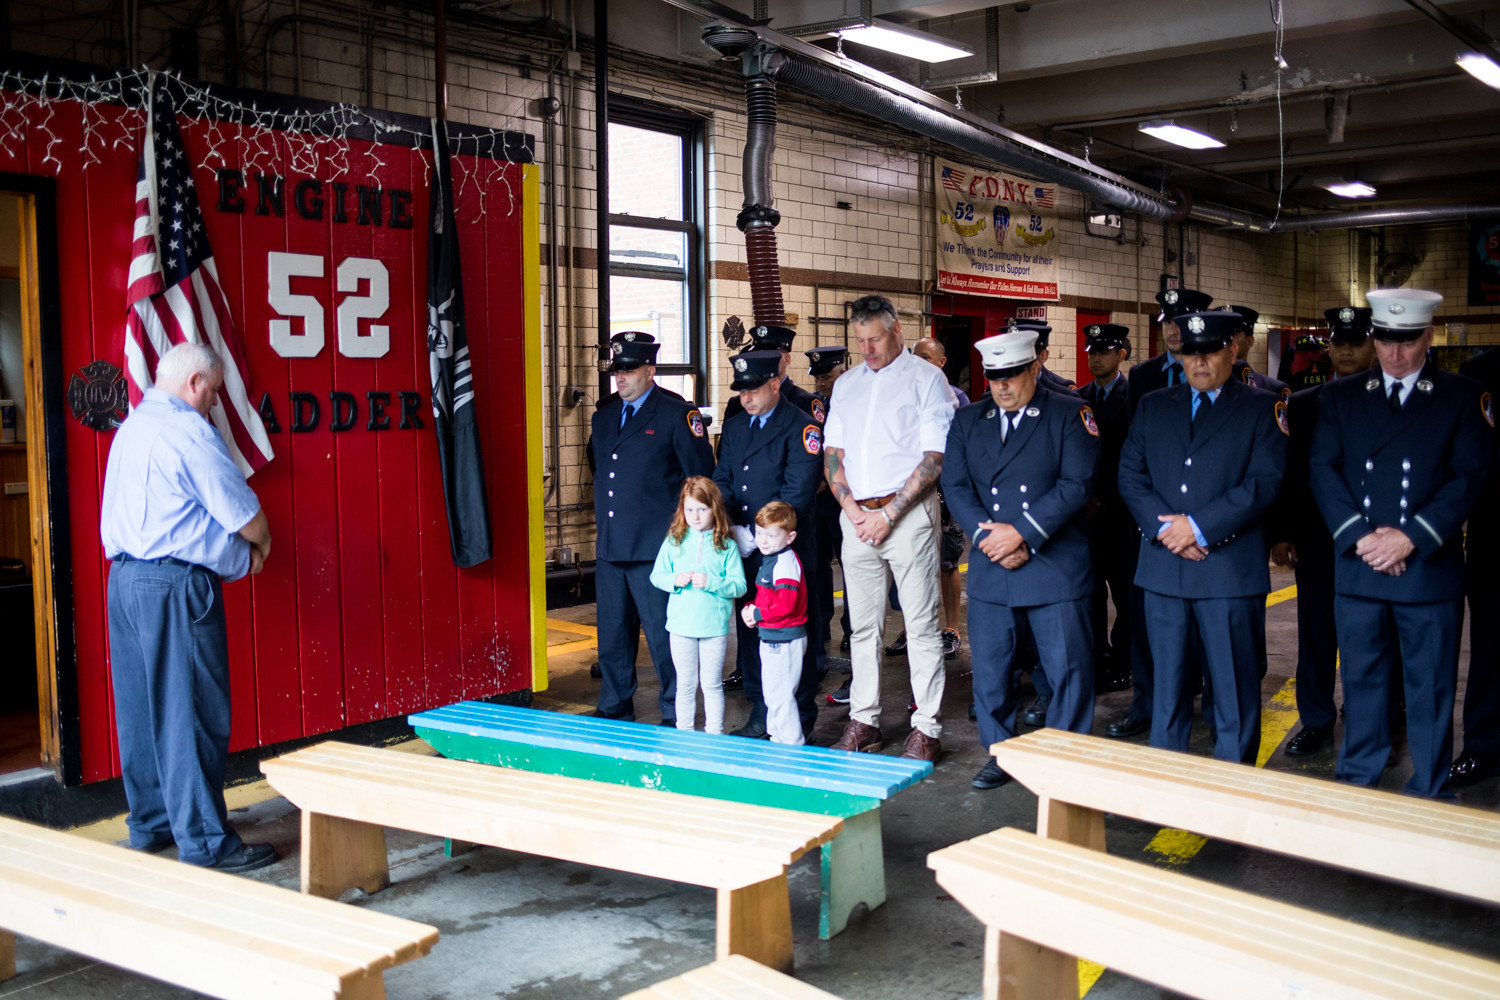 Ladder 52 firefighters stand for a moment of silence for those who died on Sept. 11, 2001, inside the firehouse while it rains heavily outside.